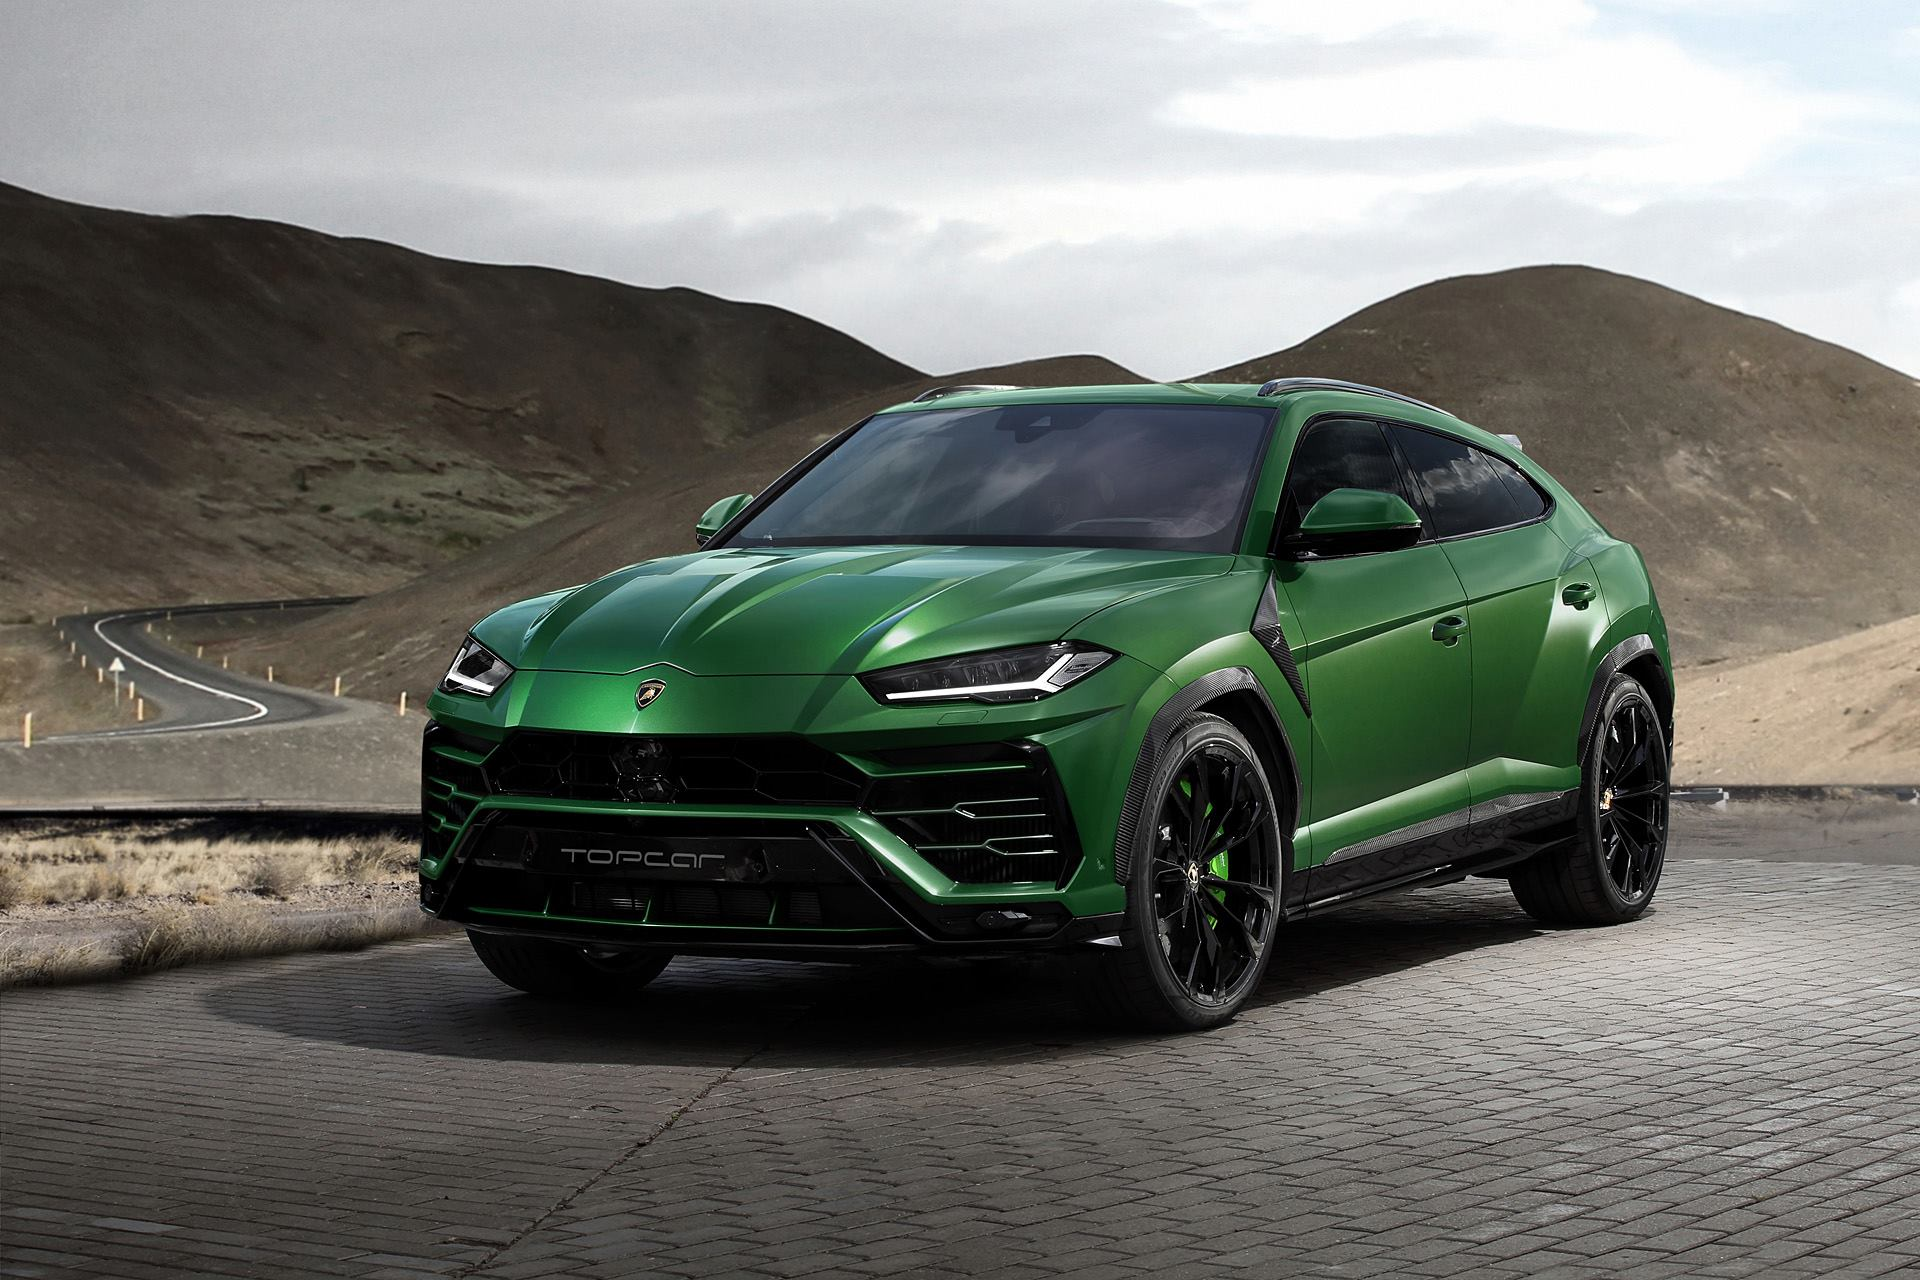 TopCar Reveals Military Green Lamborghini Urus - Exotic ...